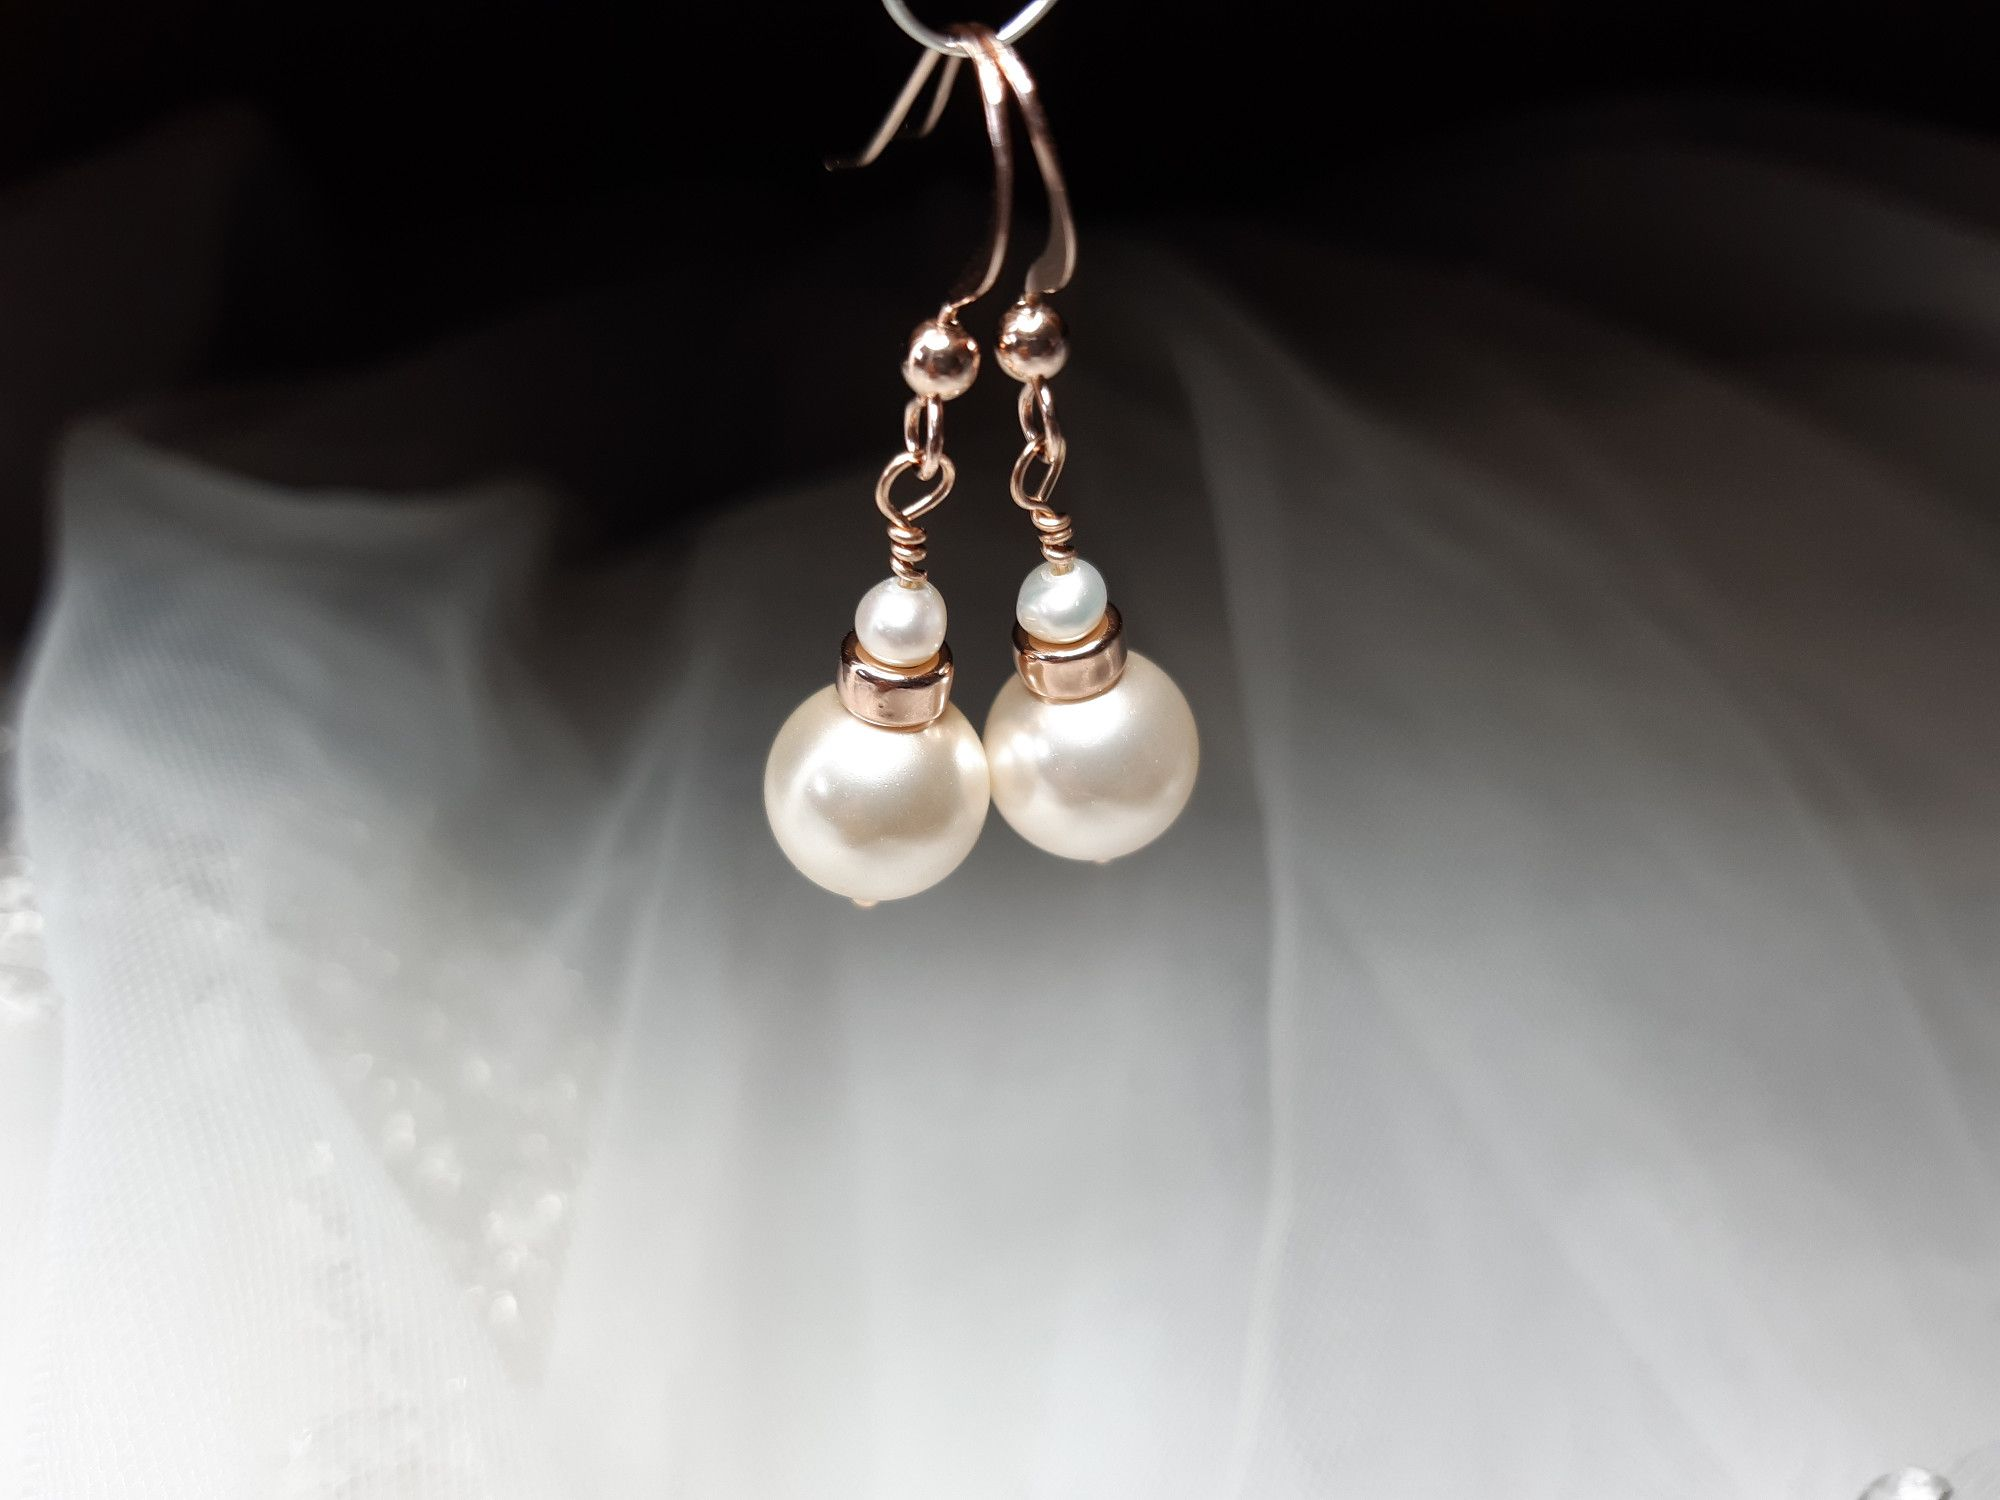 Occasion-bridal-wedding-pearl earrings with rose gold-3.jpg